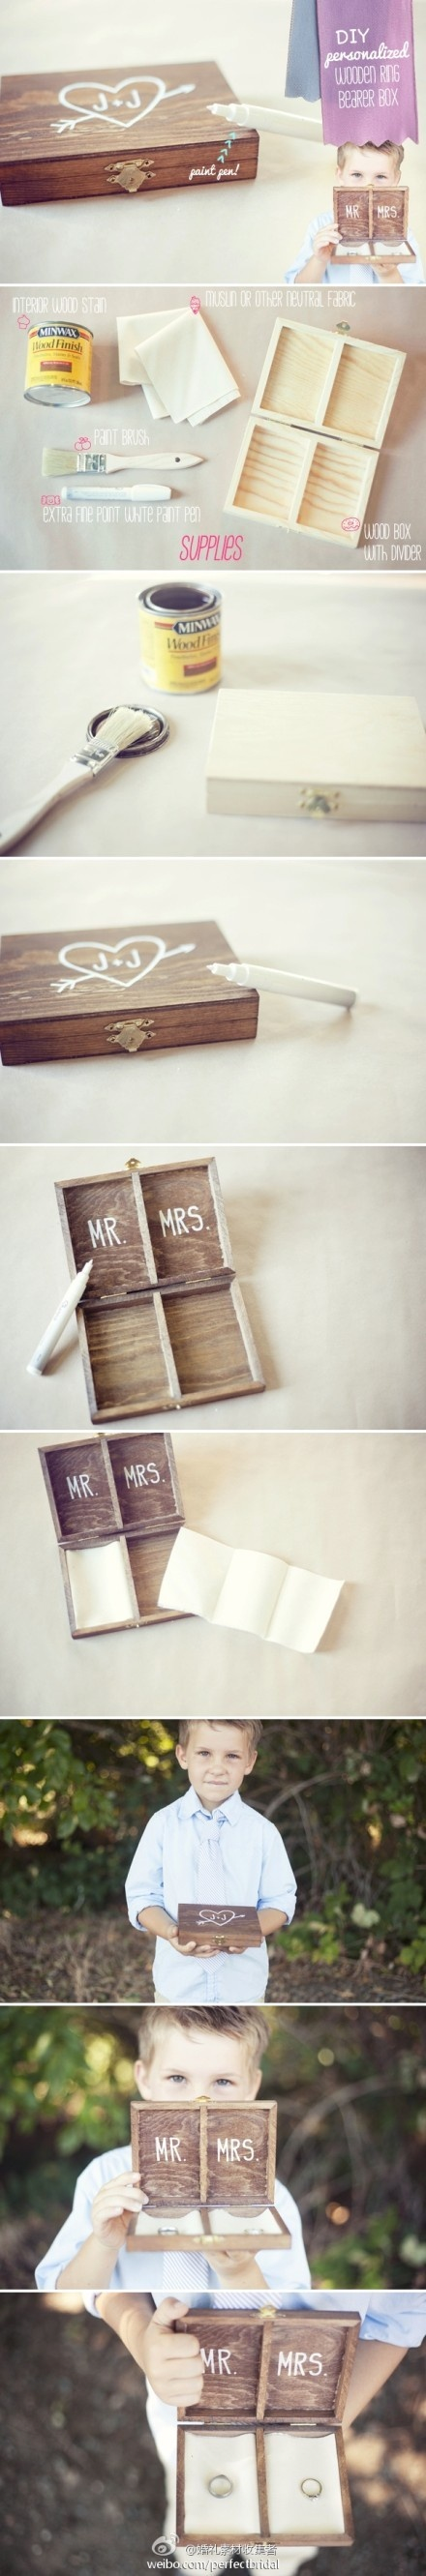 diy ring box june 7th wedding pinterest